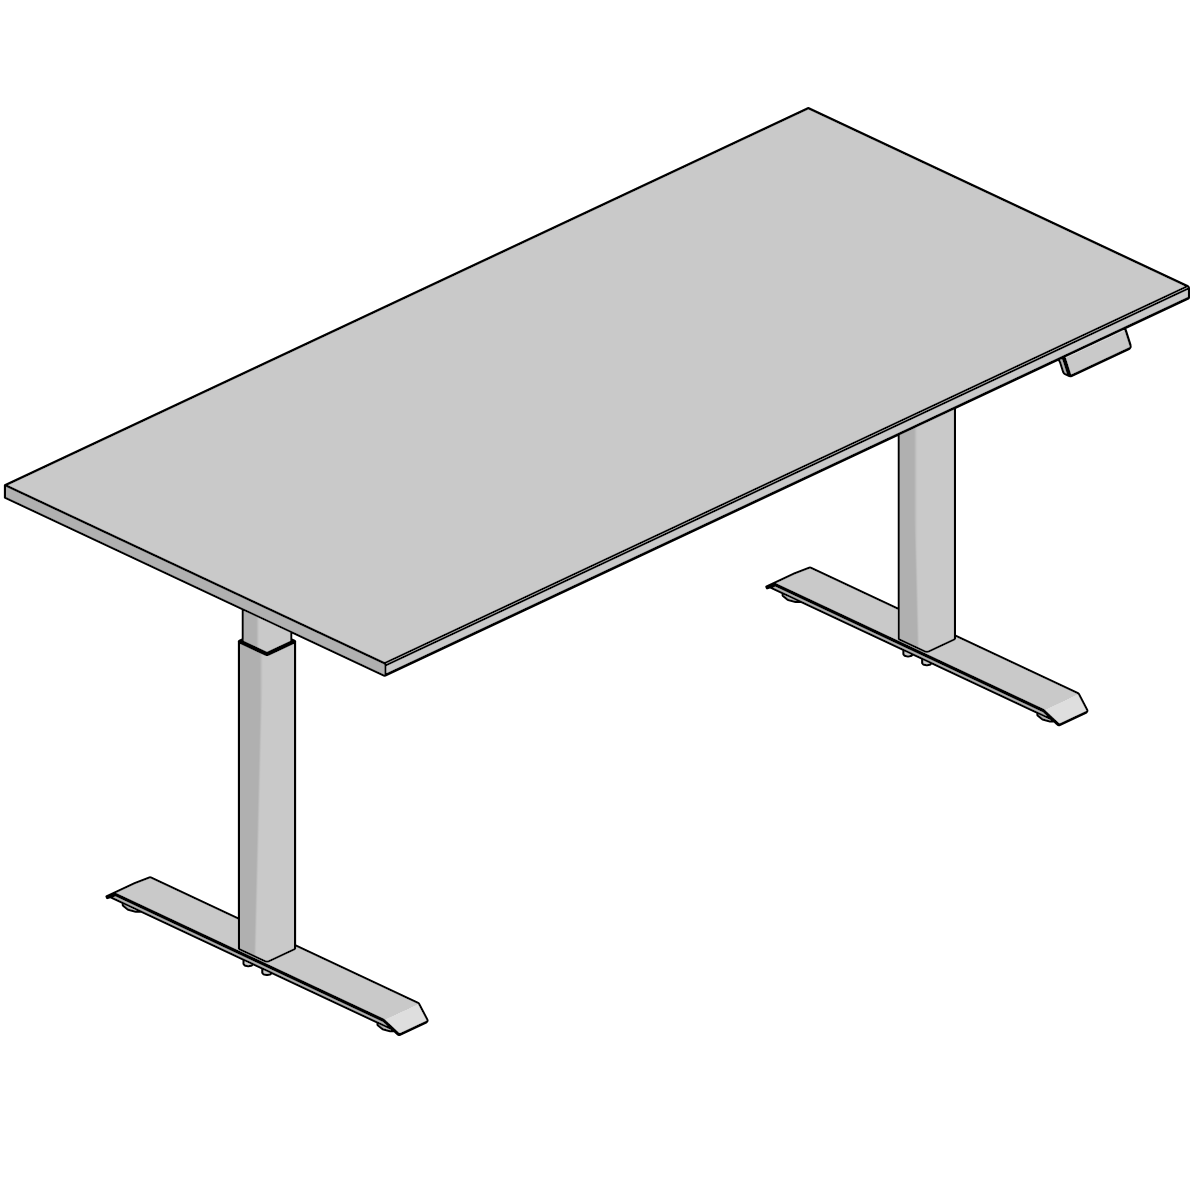 D Models Archive Steelcase - Conference room table height